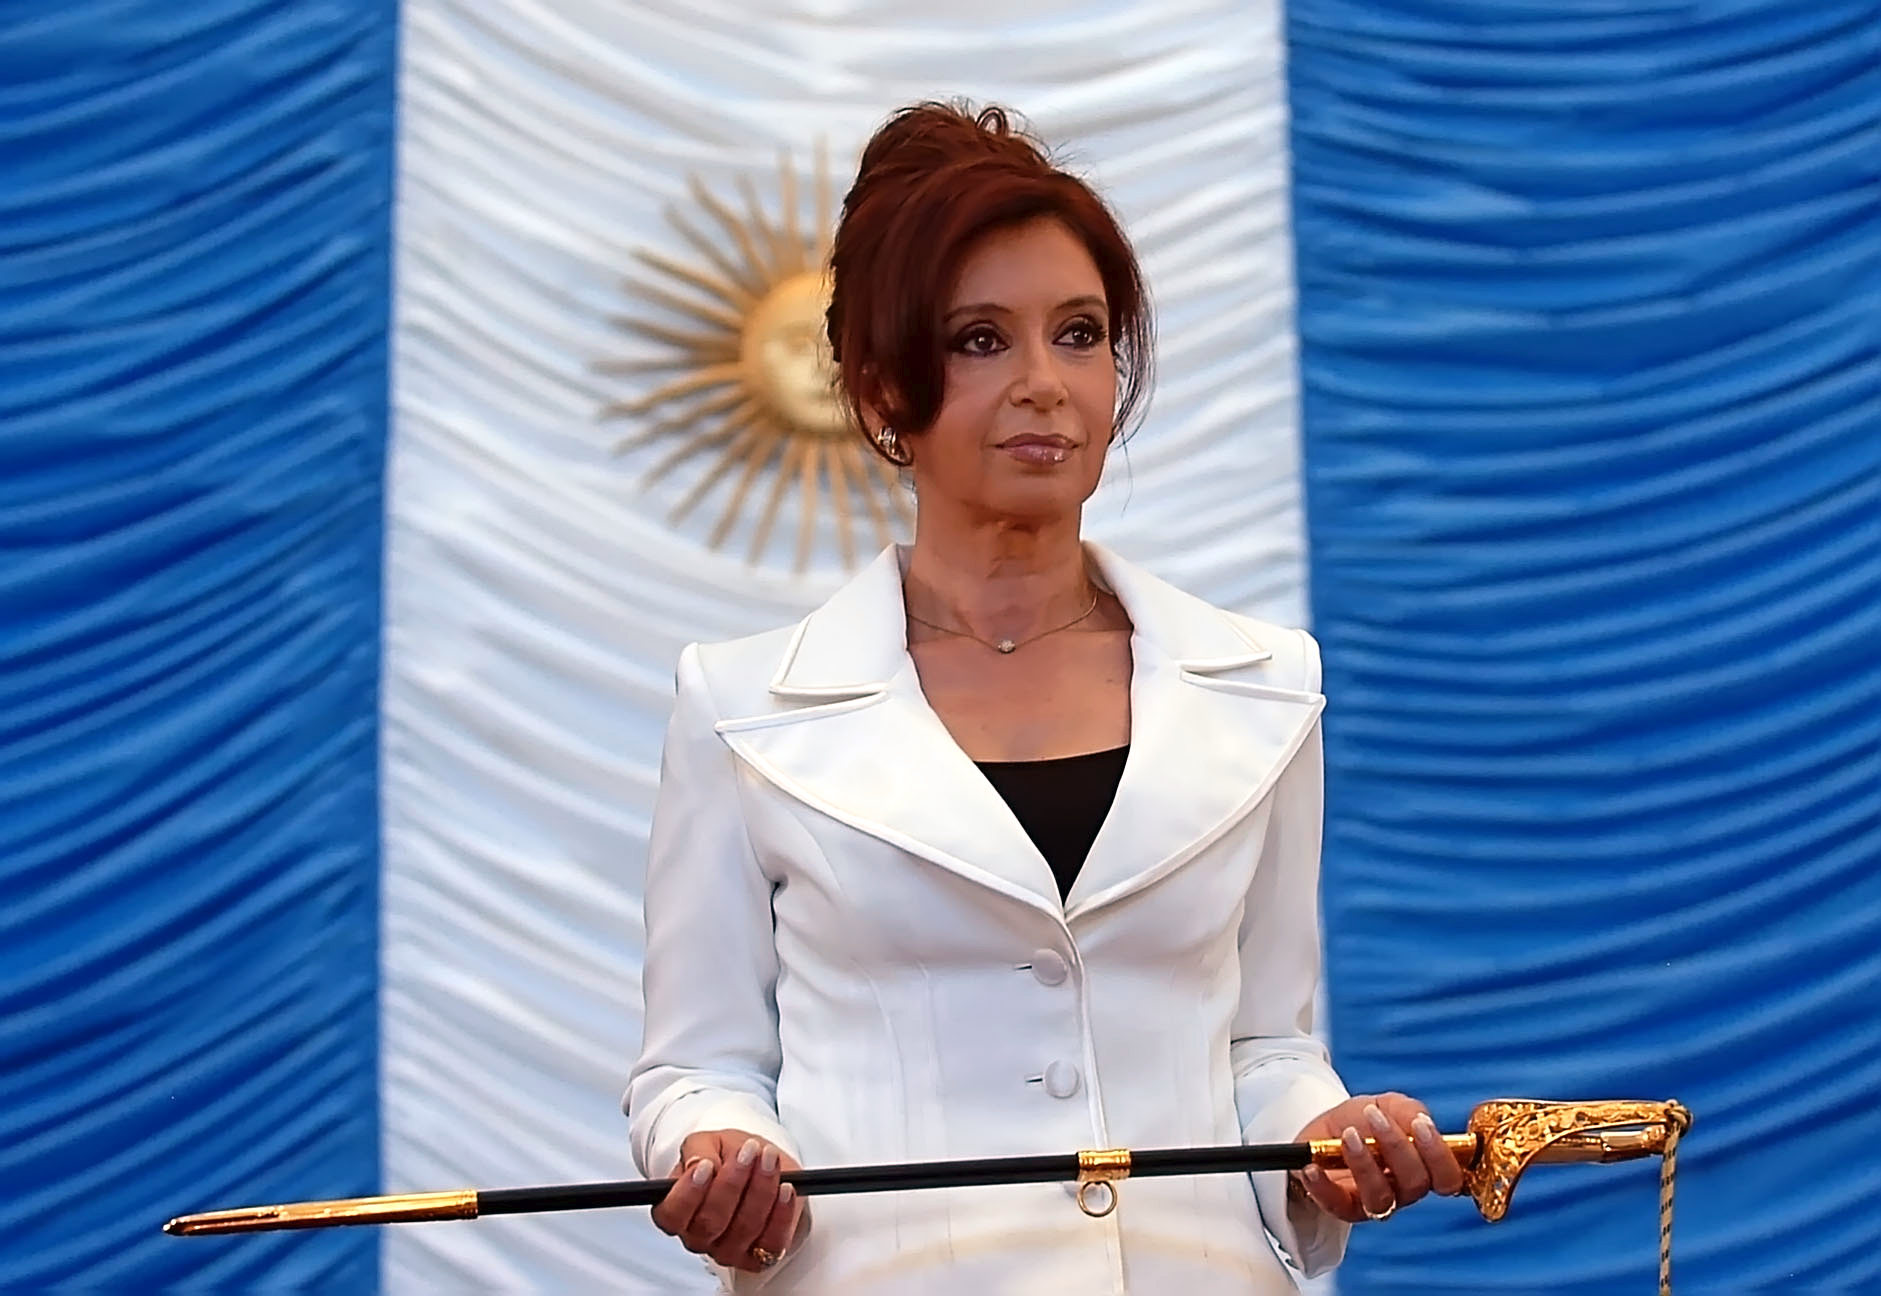 Description Cristina Fernandez Comandante en Jefe.jpg